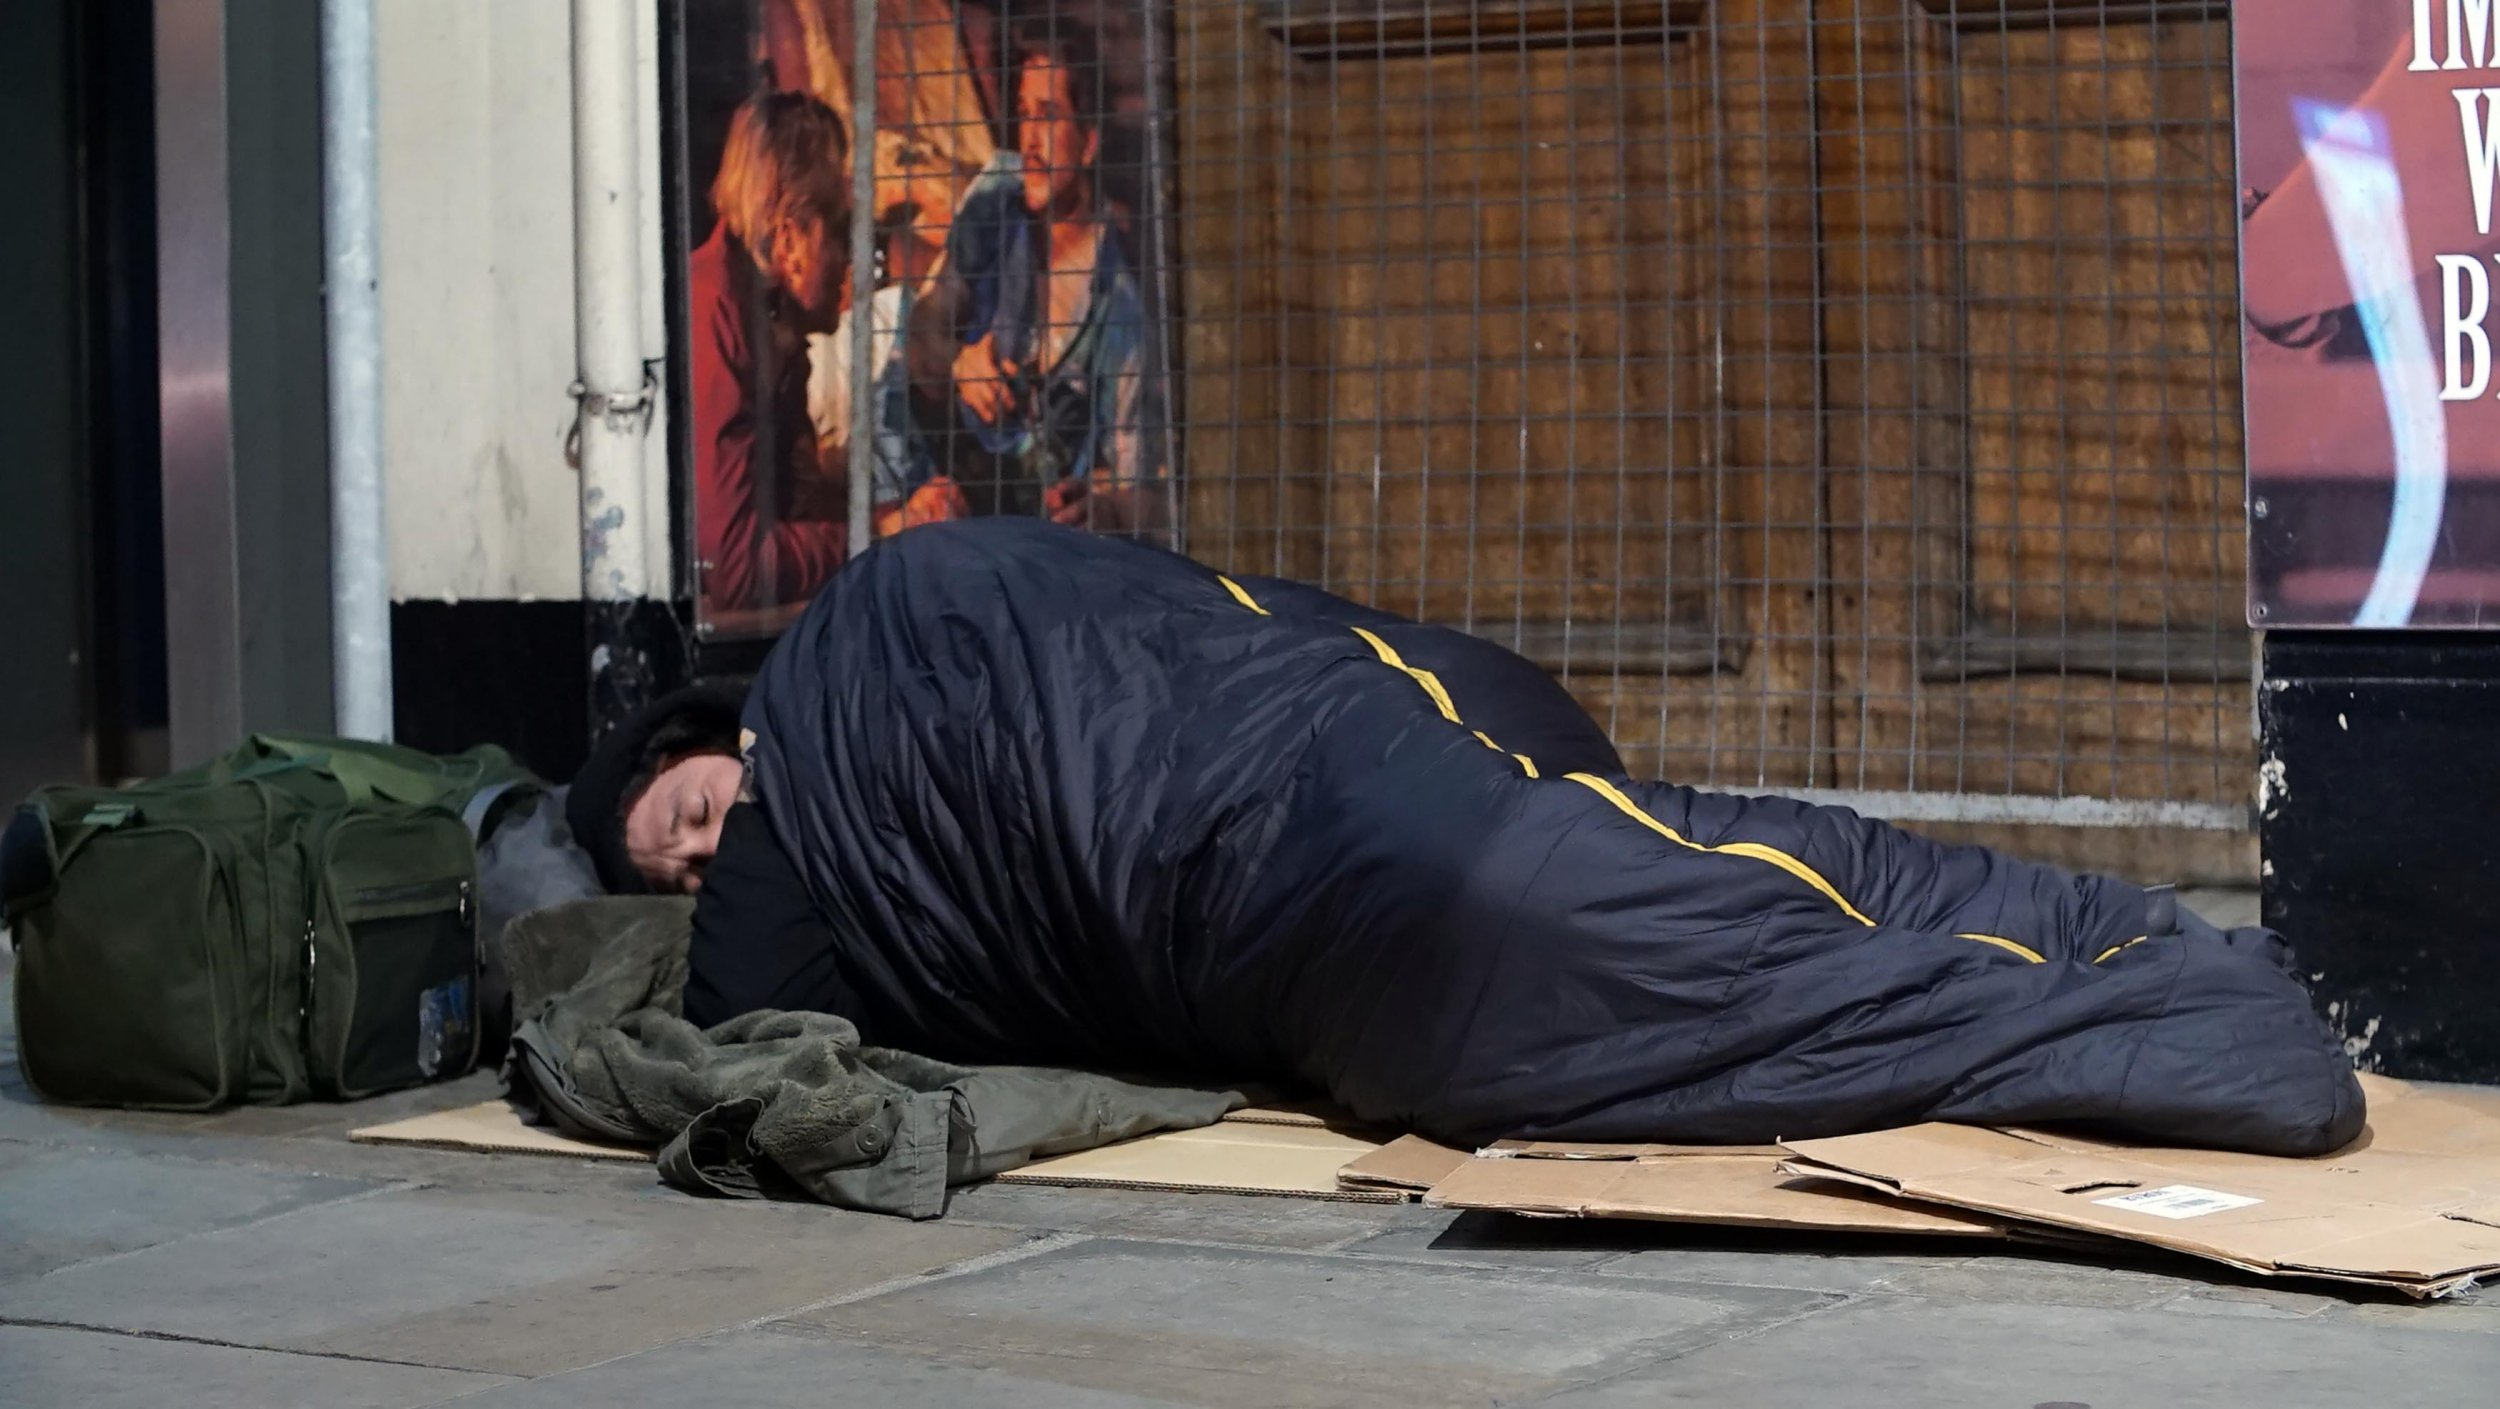 Fake rough sleeper who earns up to £600 a day says begging brings in more than working